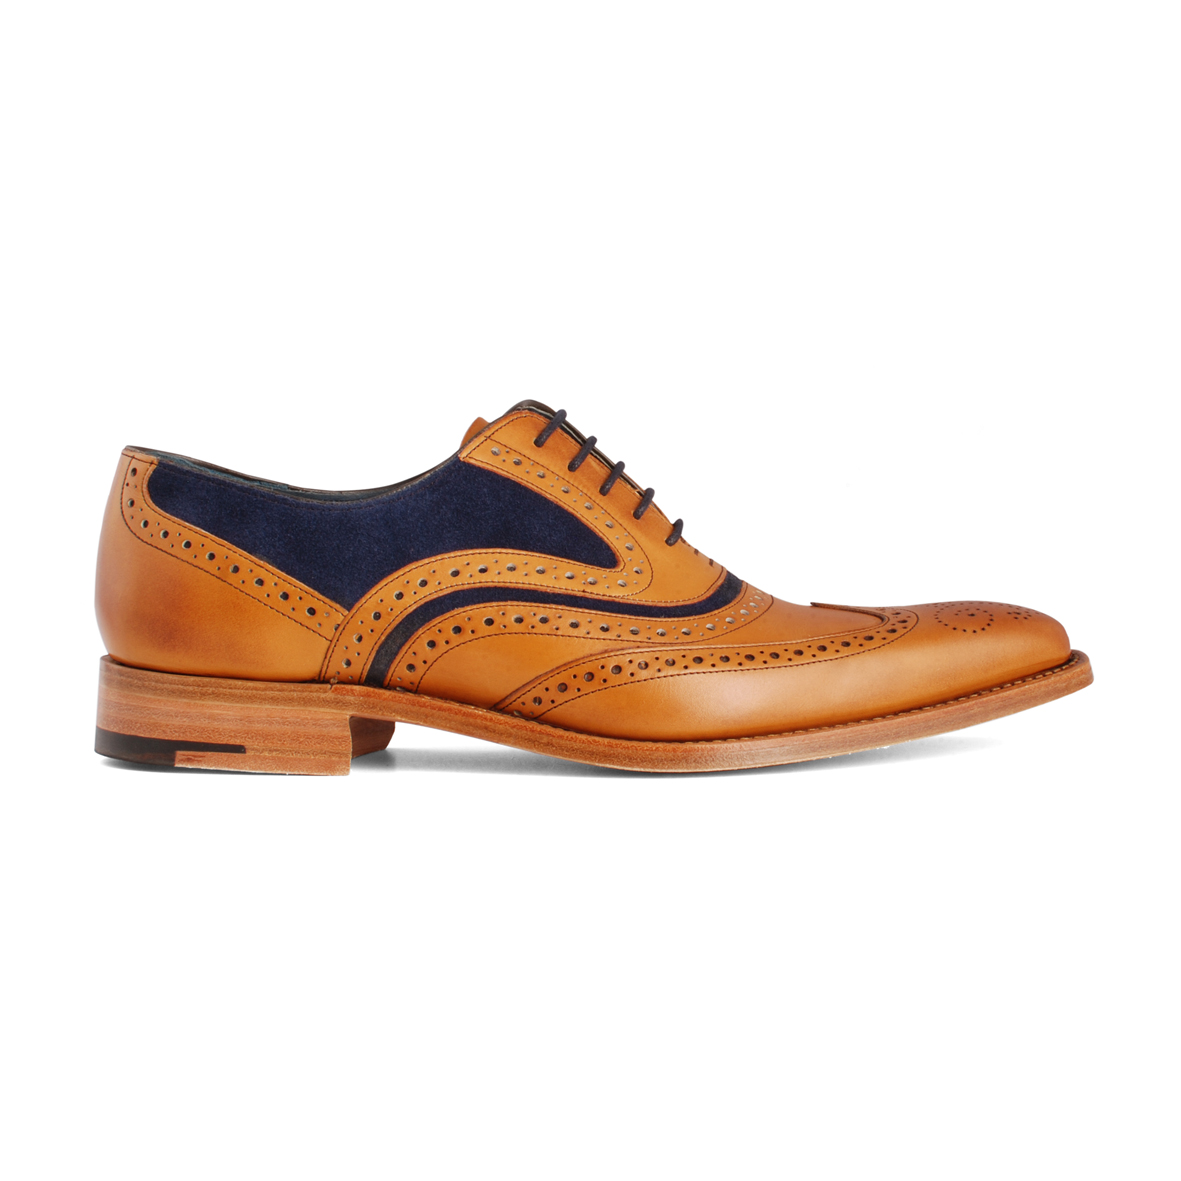 Barker McClean Cedar/Navy Suede shoes